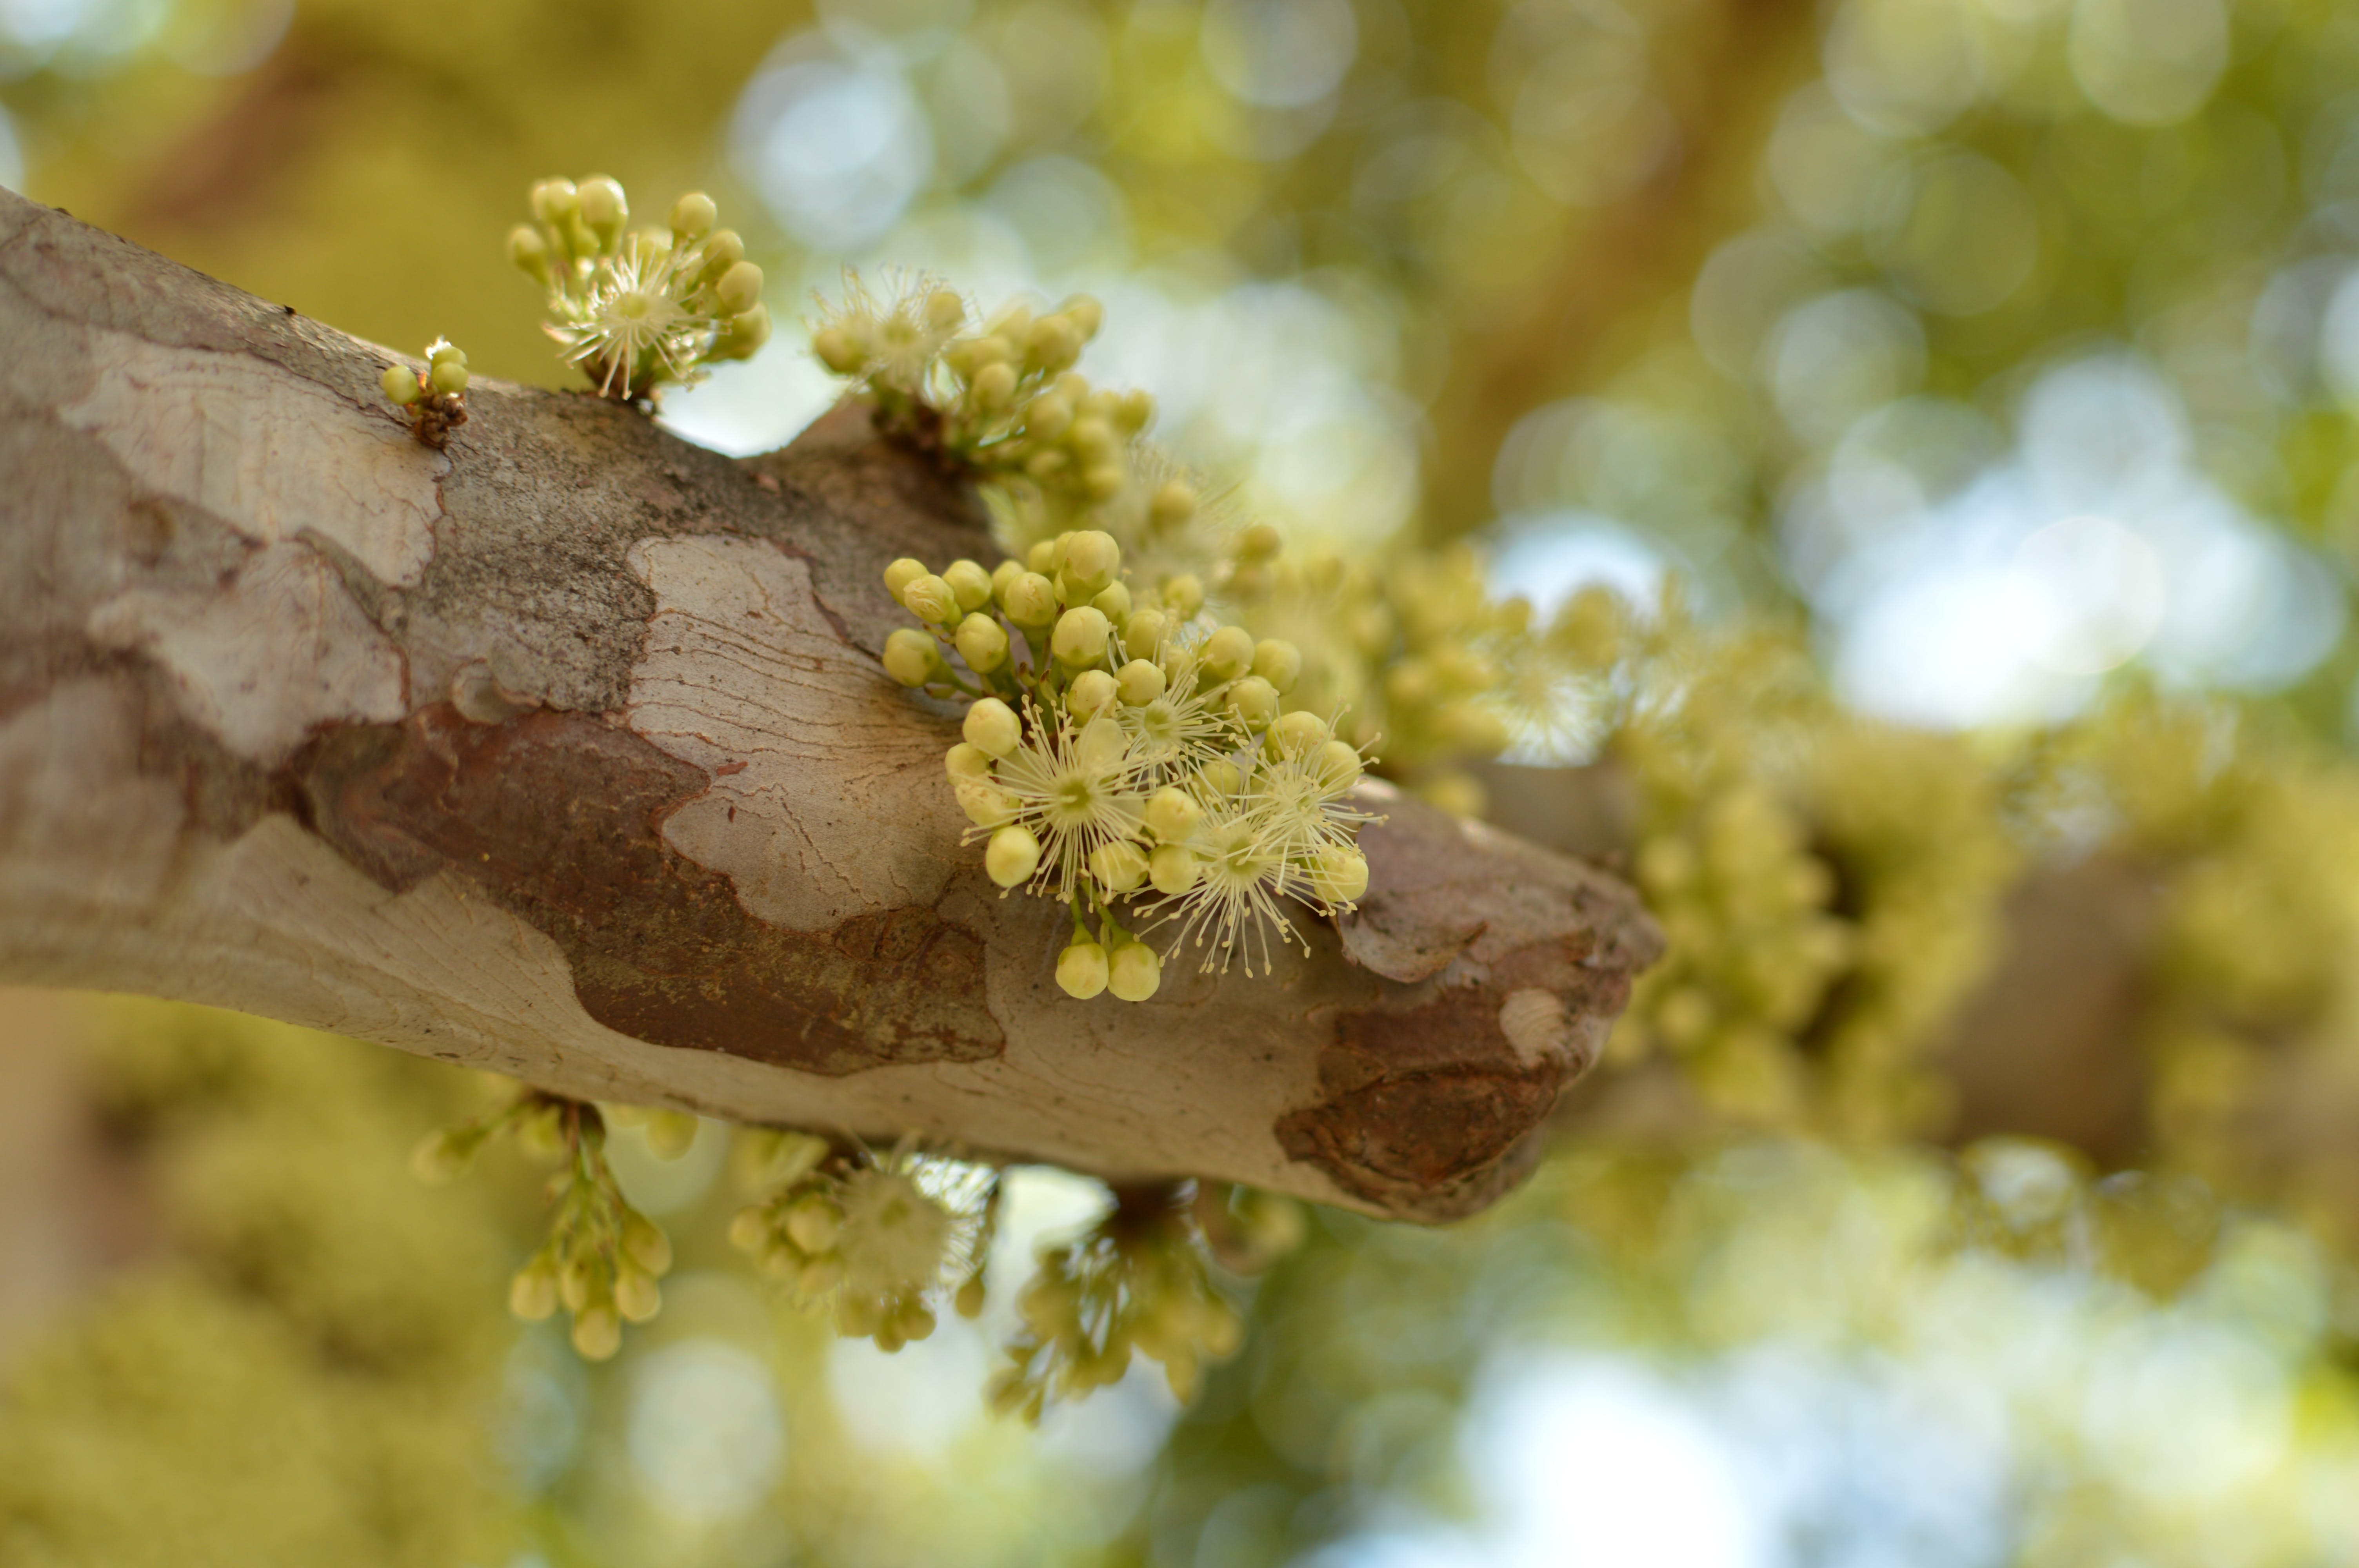 Yellow Petaled Flowers on Tree Branch